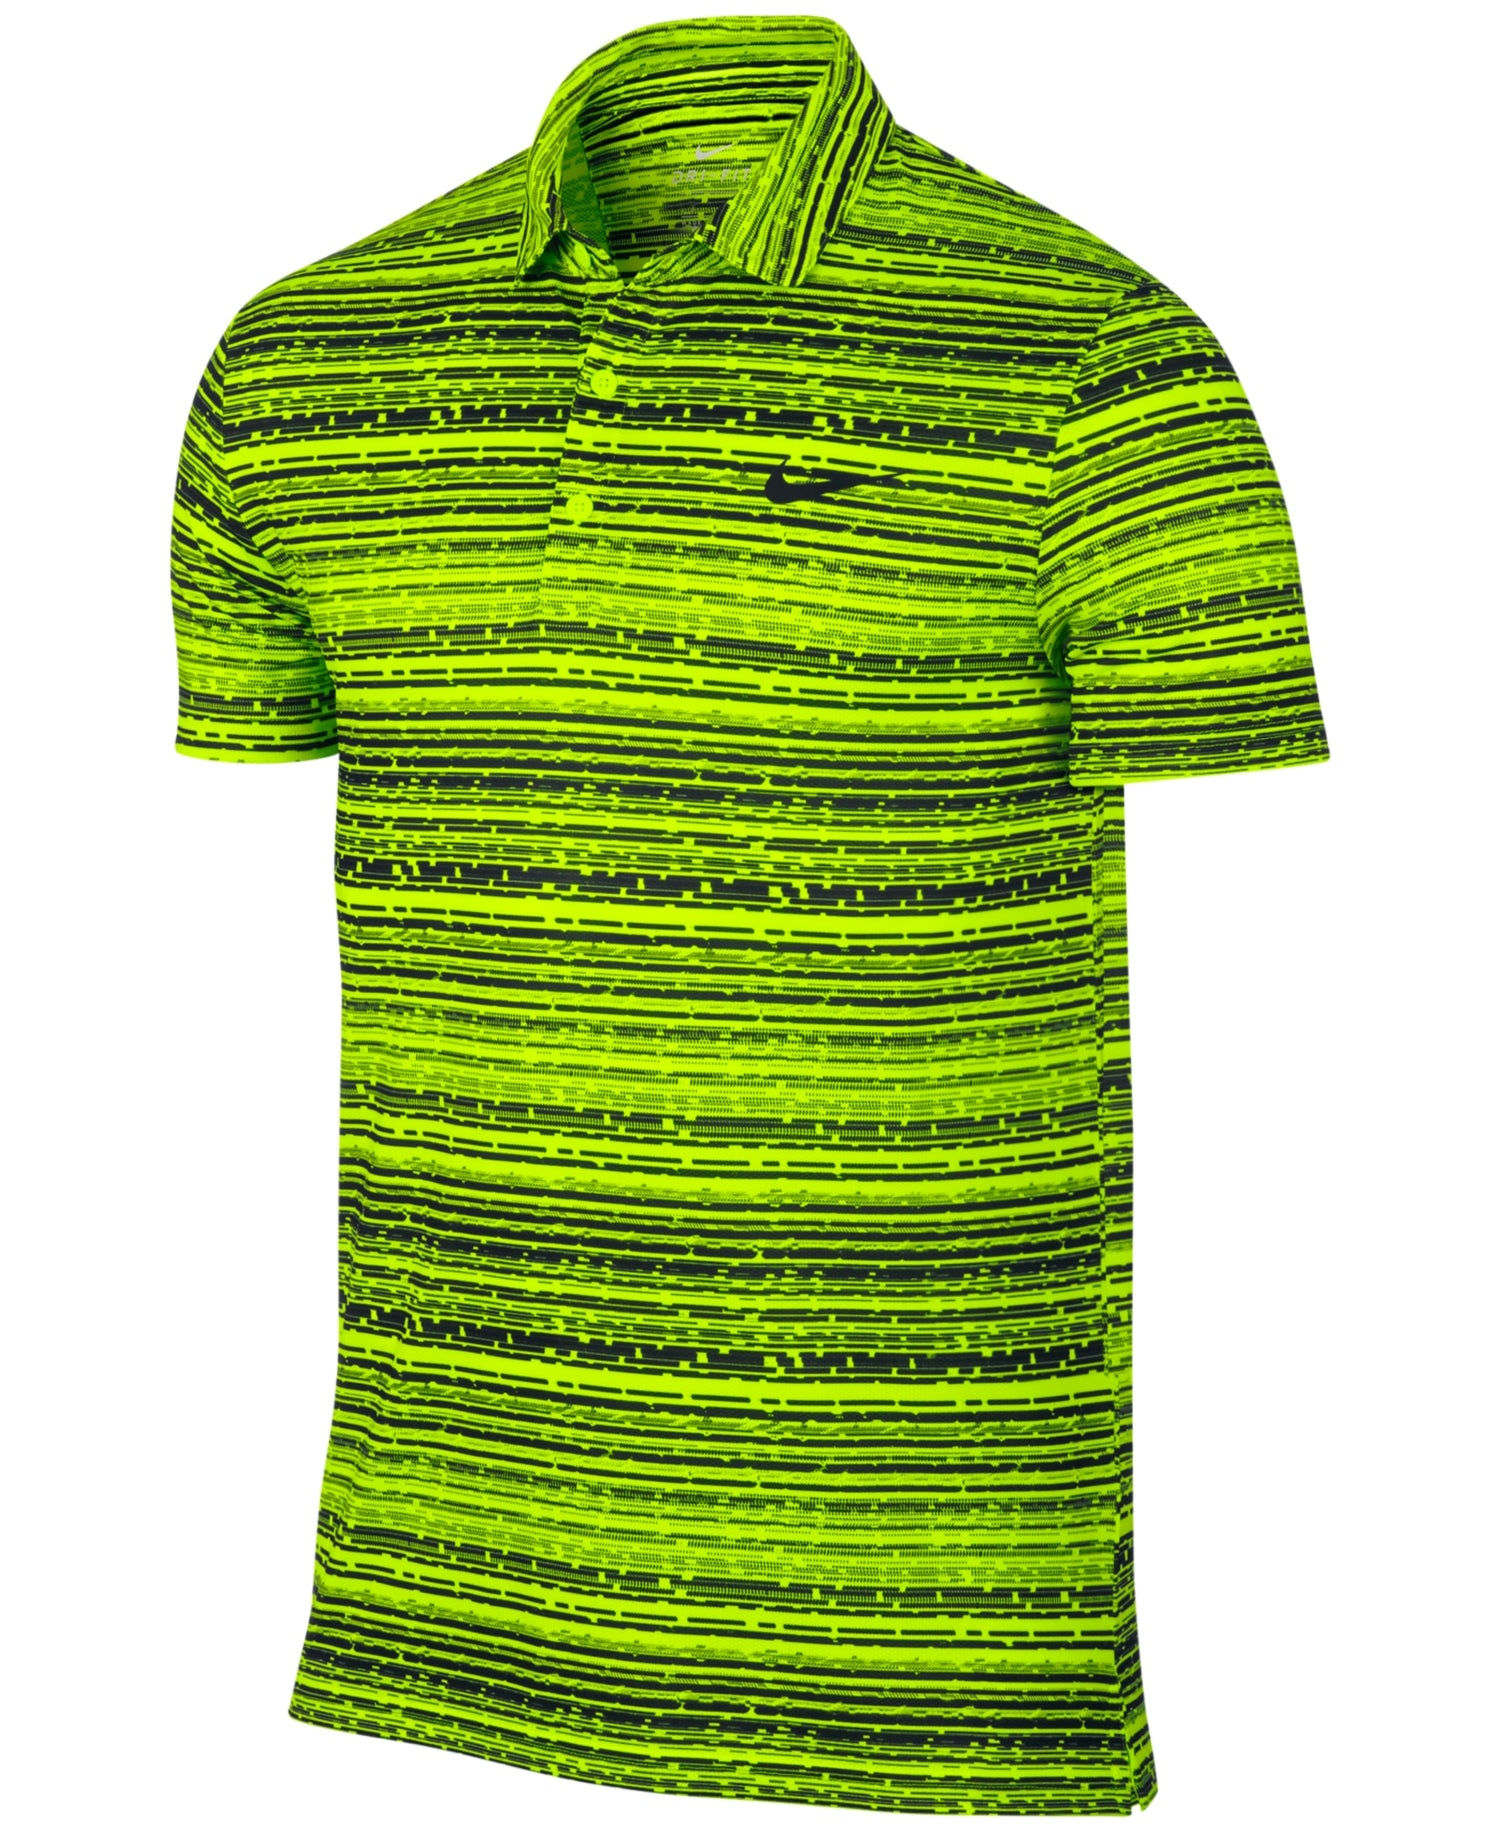 99fcfcca Nike Men's Court Striped Dri-fit Tennis Polo – Retail Trunk